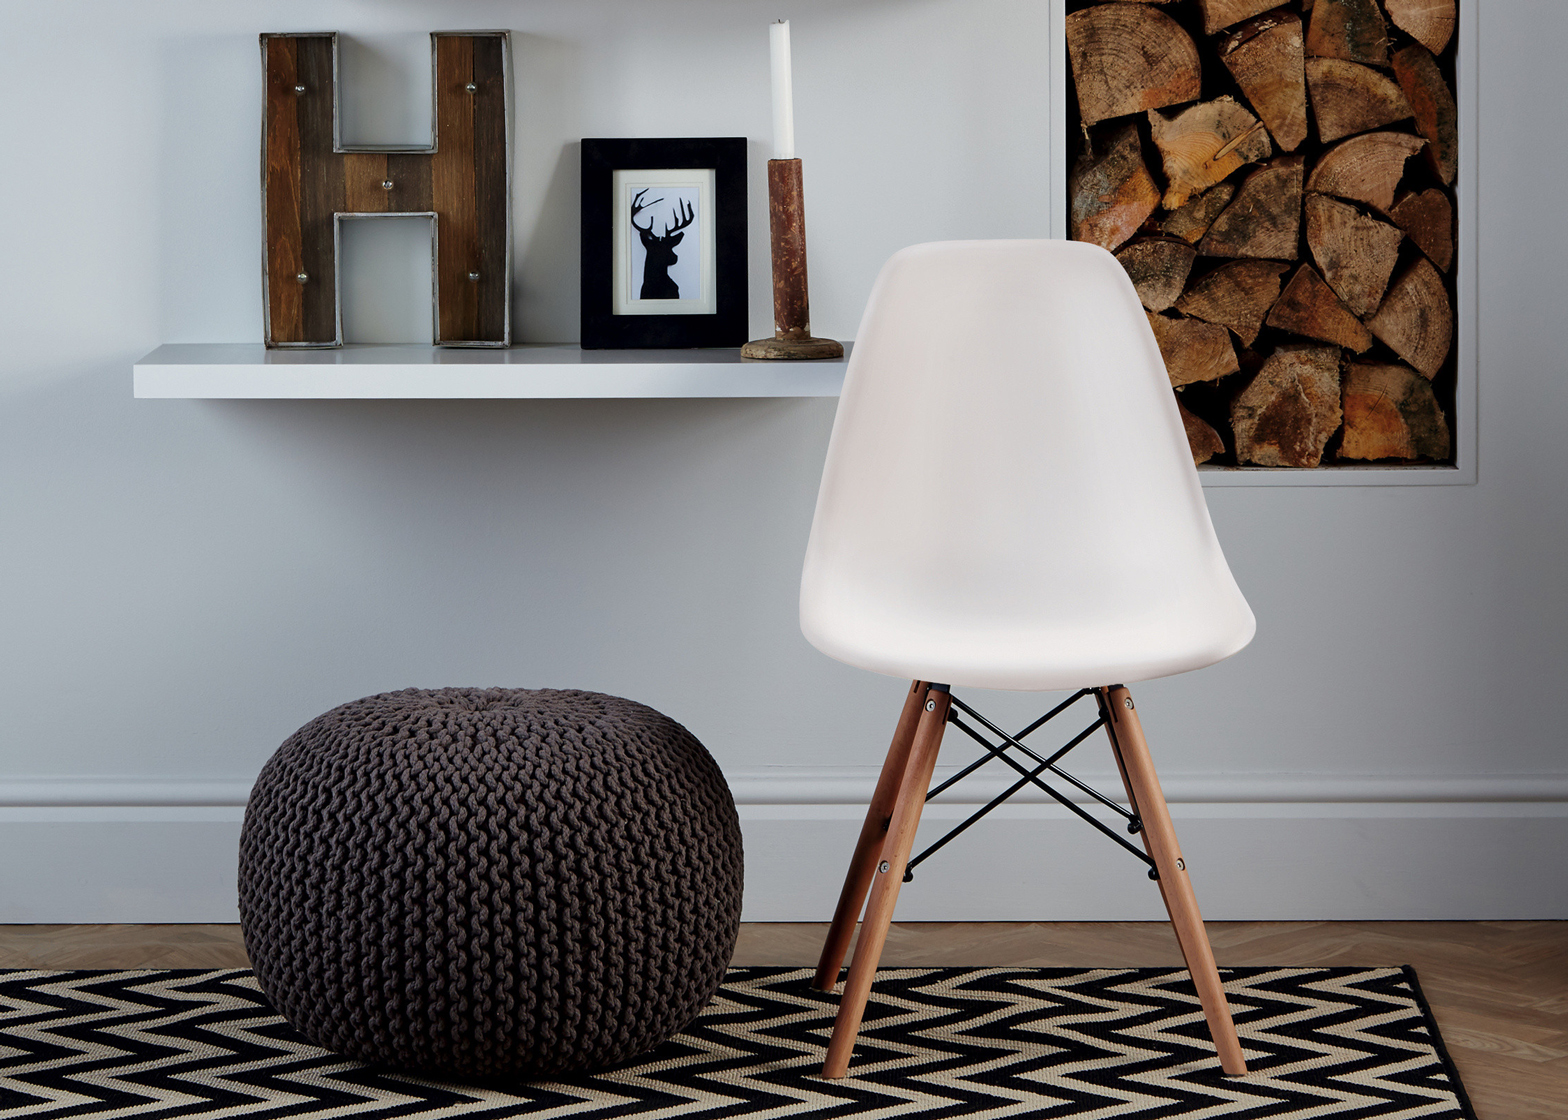 Aldi UK sells replica Eames' DSW Plastic Chairs